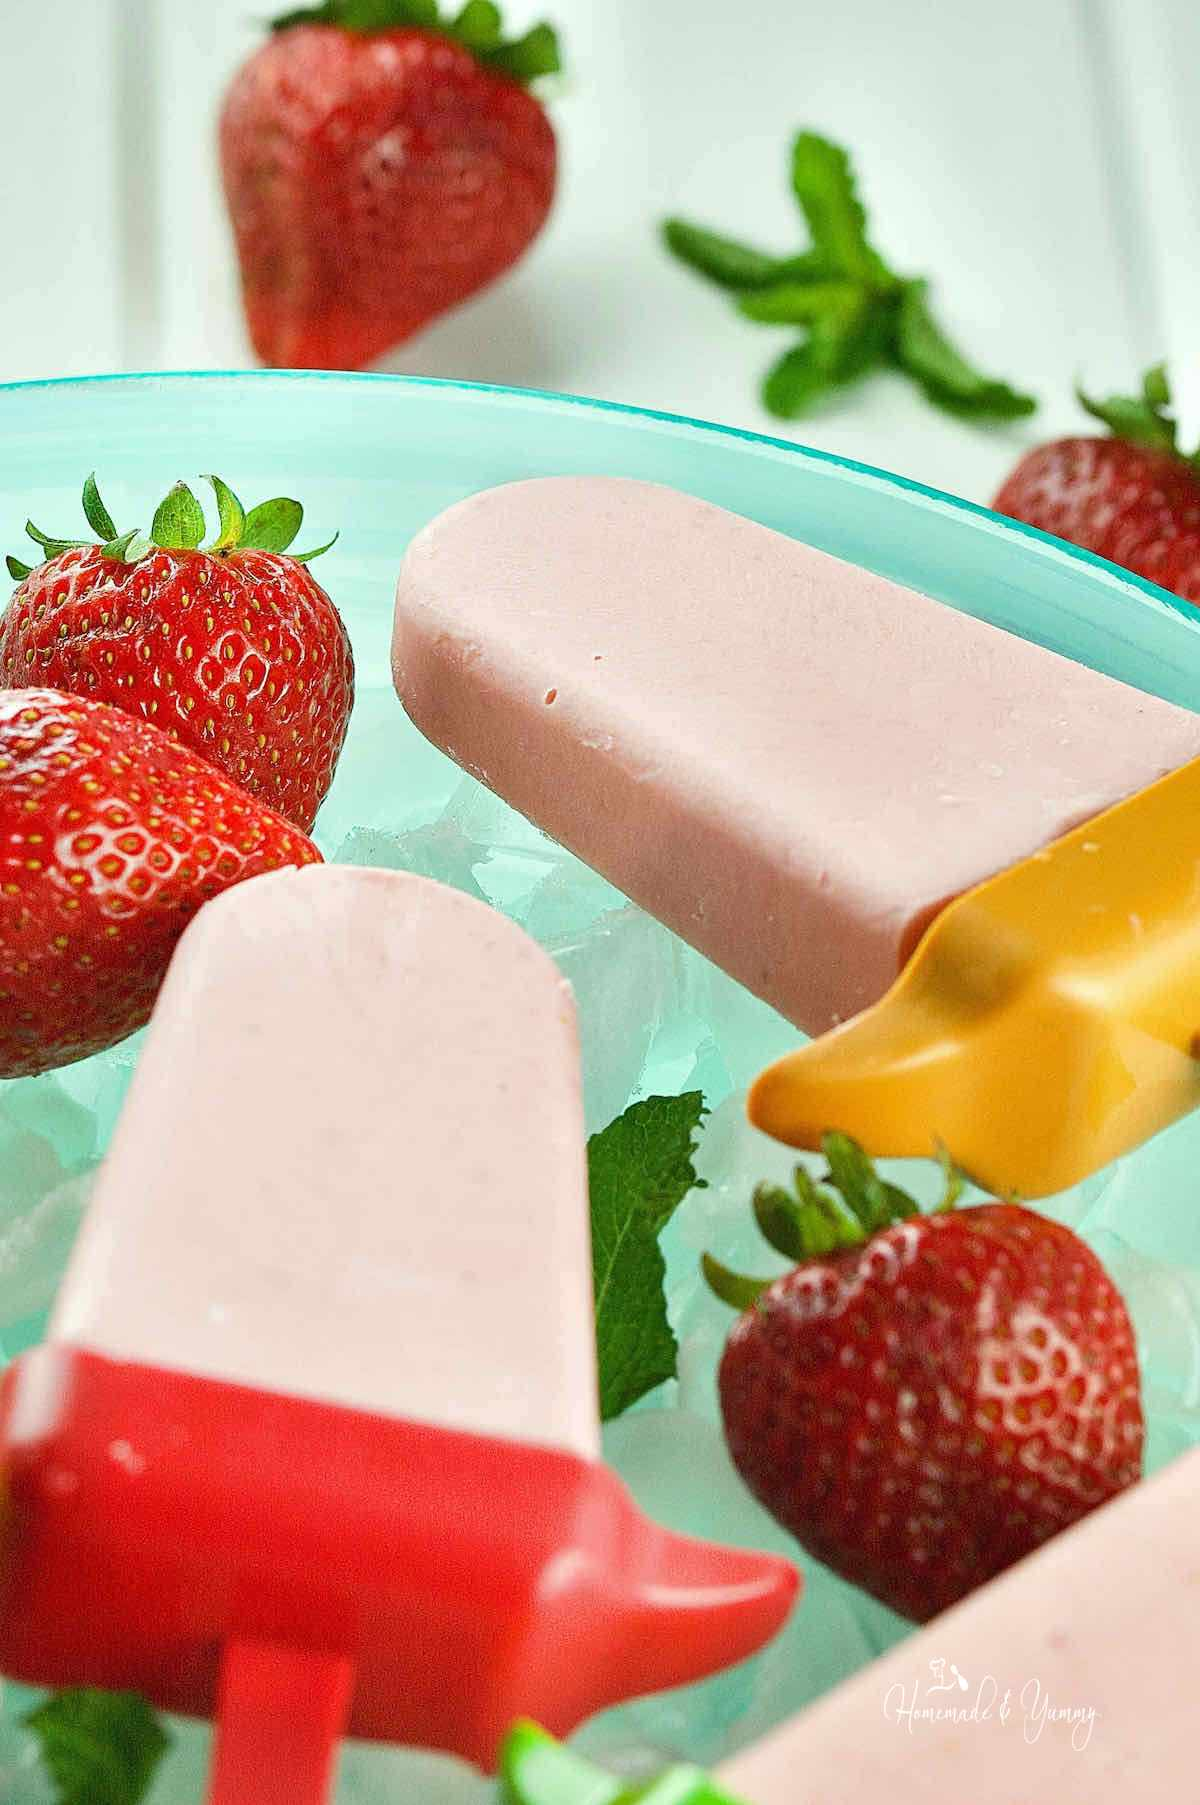 Creamy strawberry cheesecake popsicles on a bed of ice in a bowl.